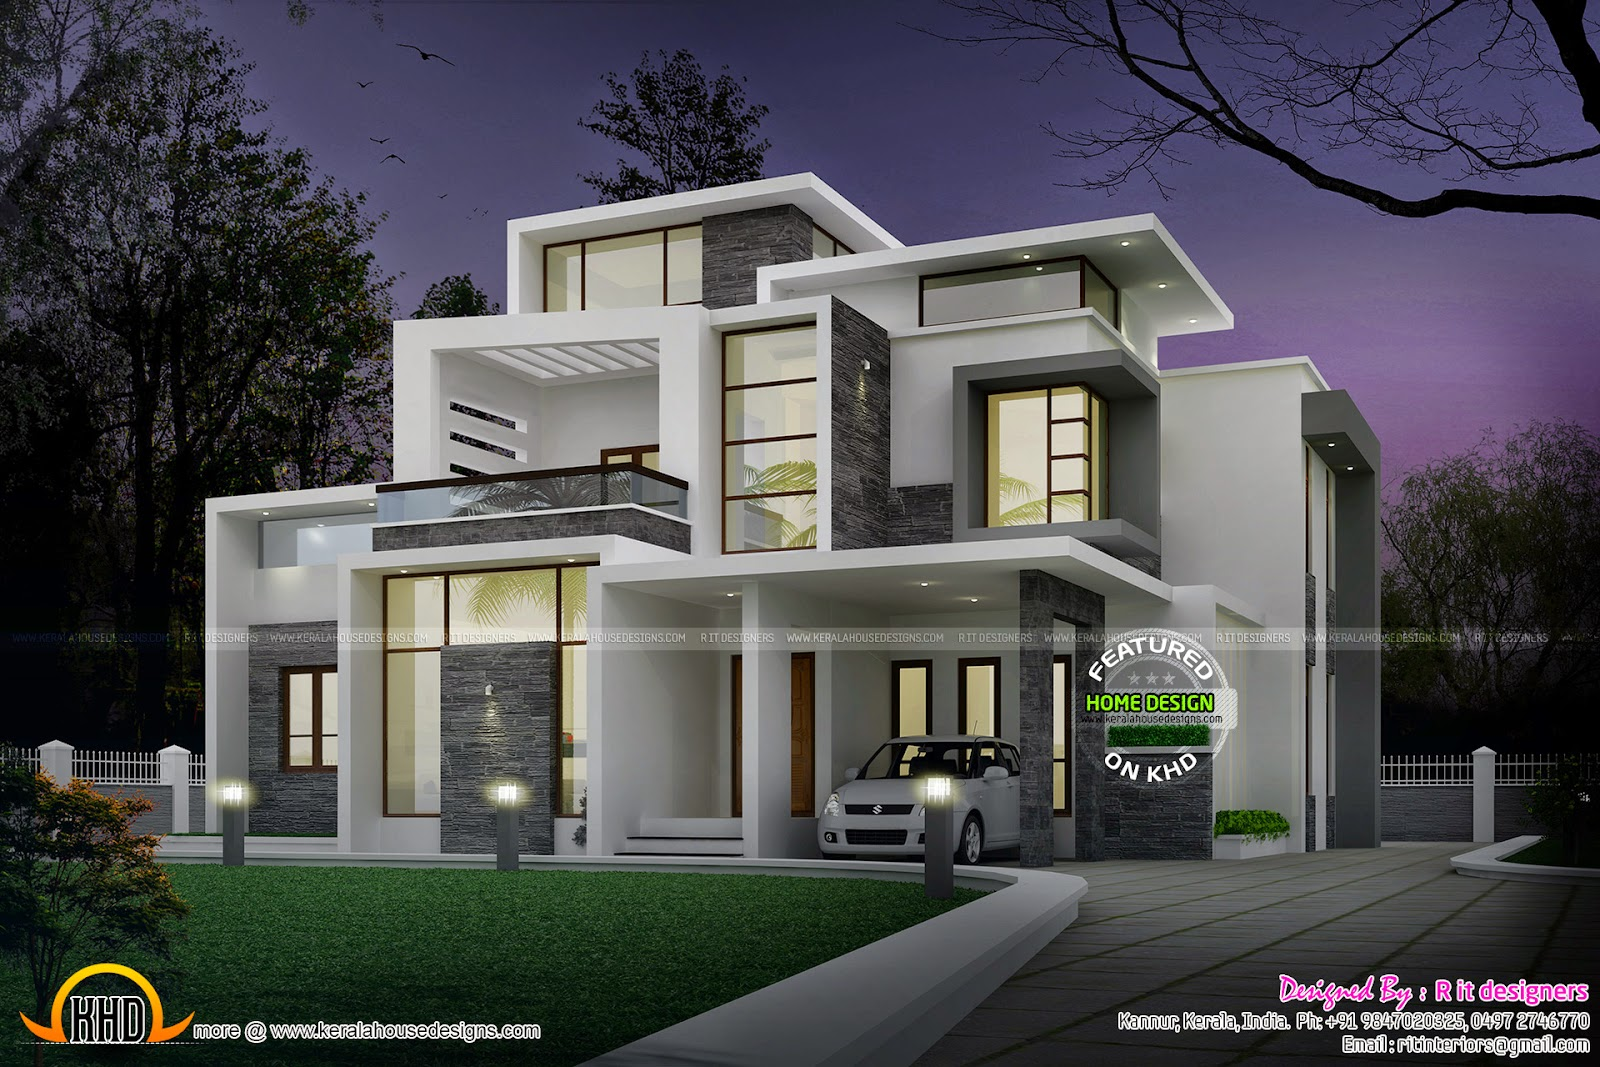 Grand contemporary home design kerala home design and for Modern 3 bedroom house plans and designs